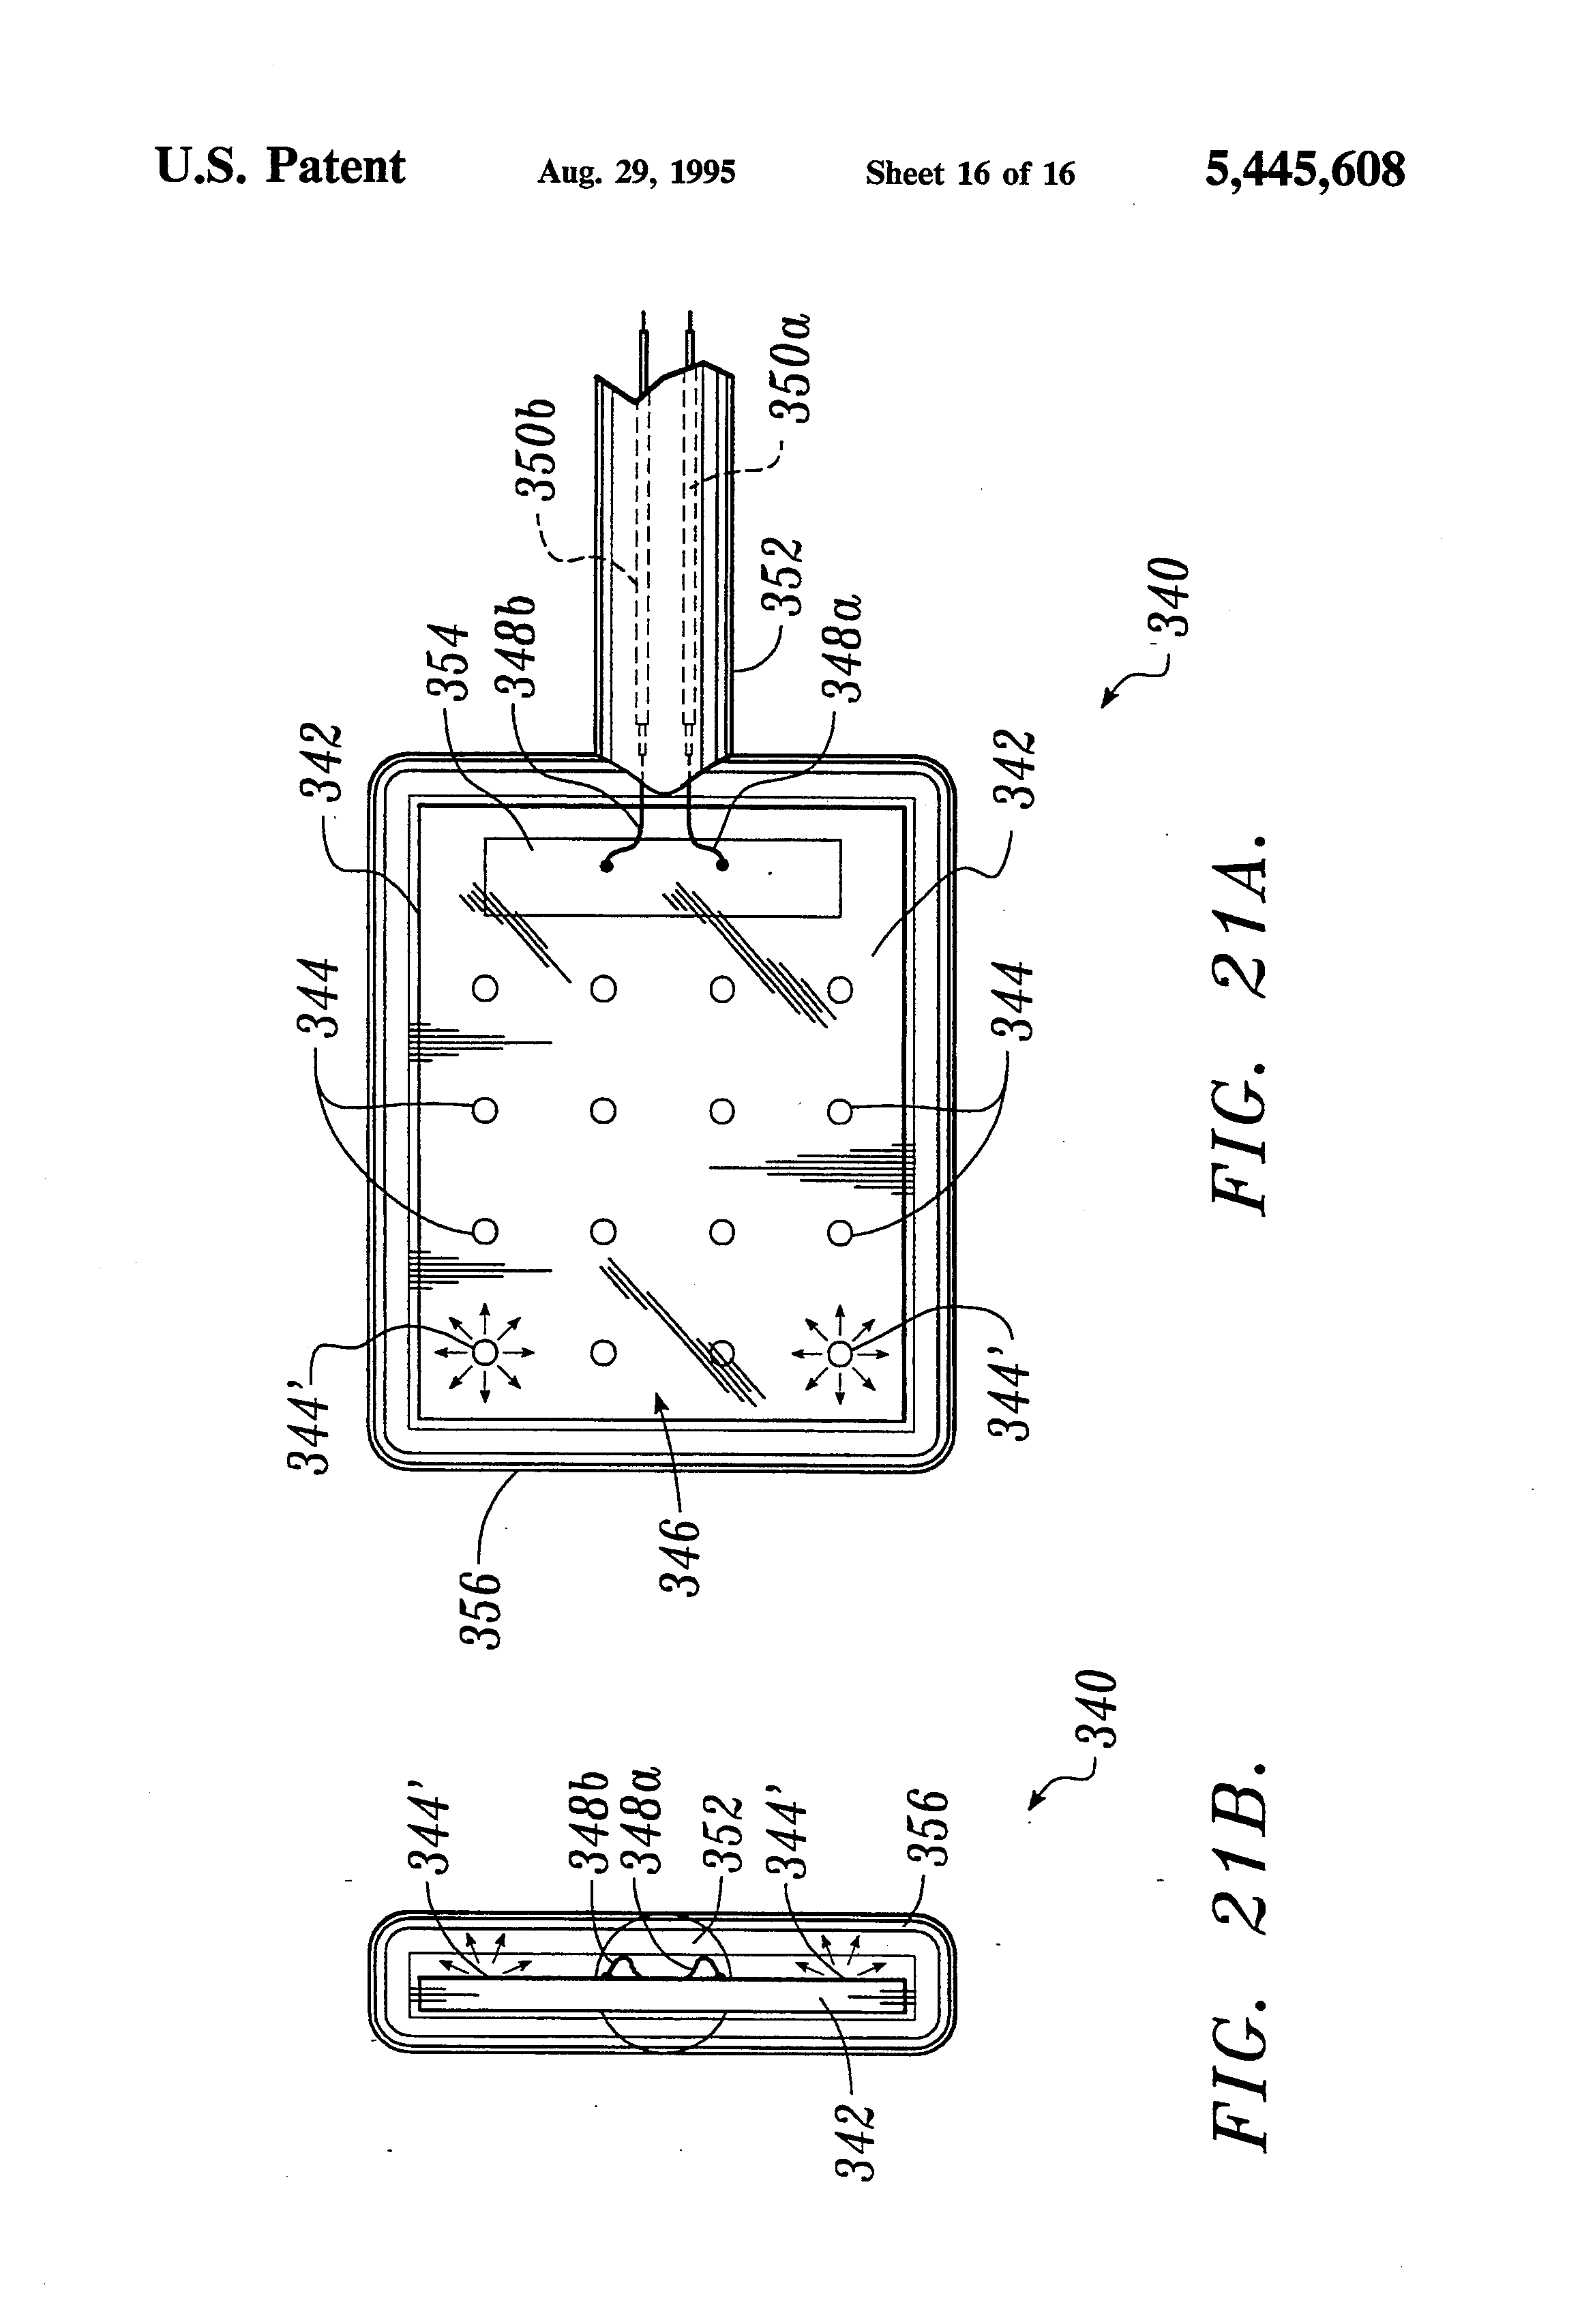 Patent Us5445608 Method And Apparatus For Providing Light 277 Volt Wiring Diagram In Addition Hoa Switch Drawing